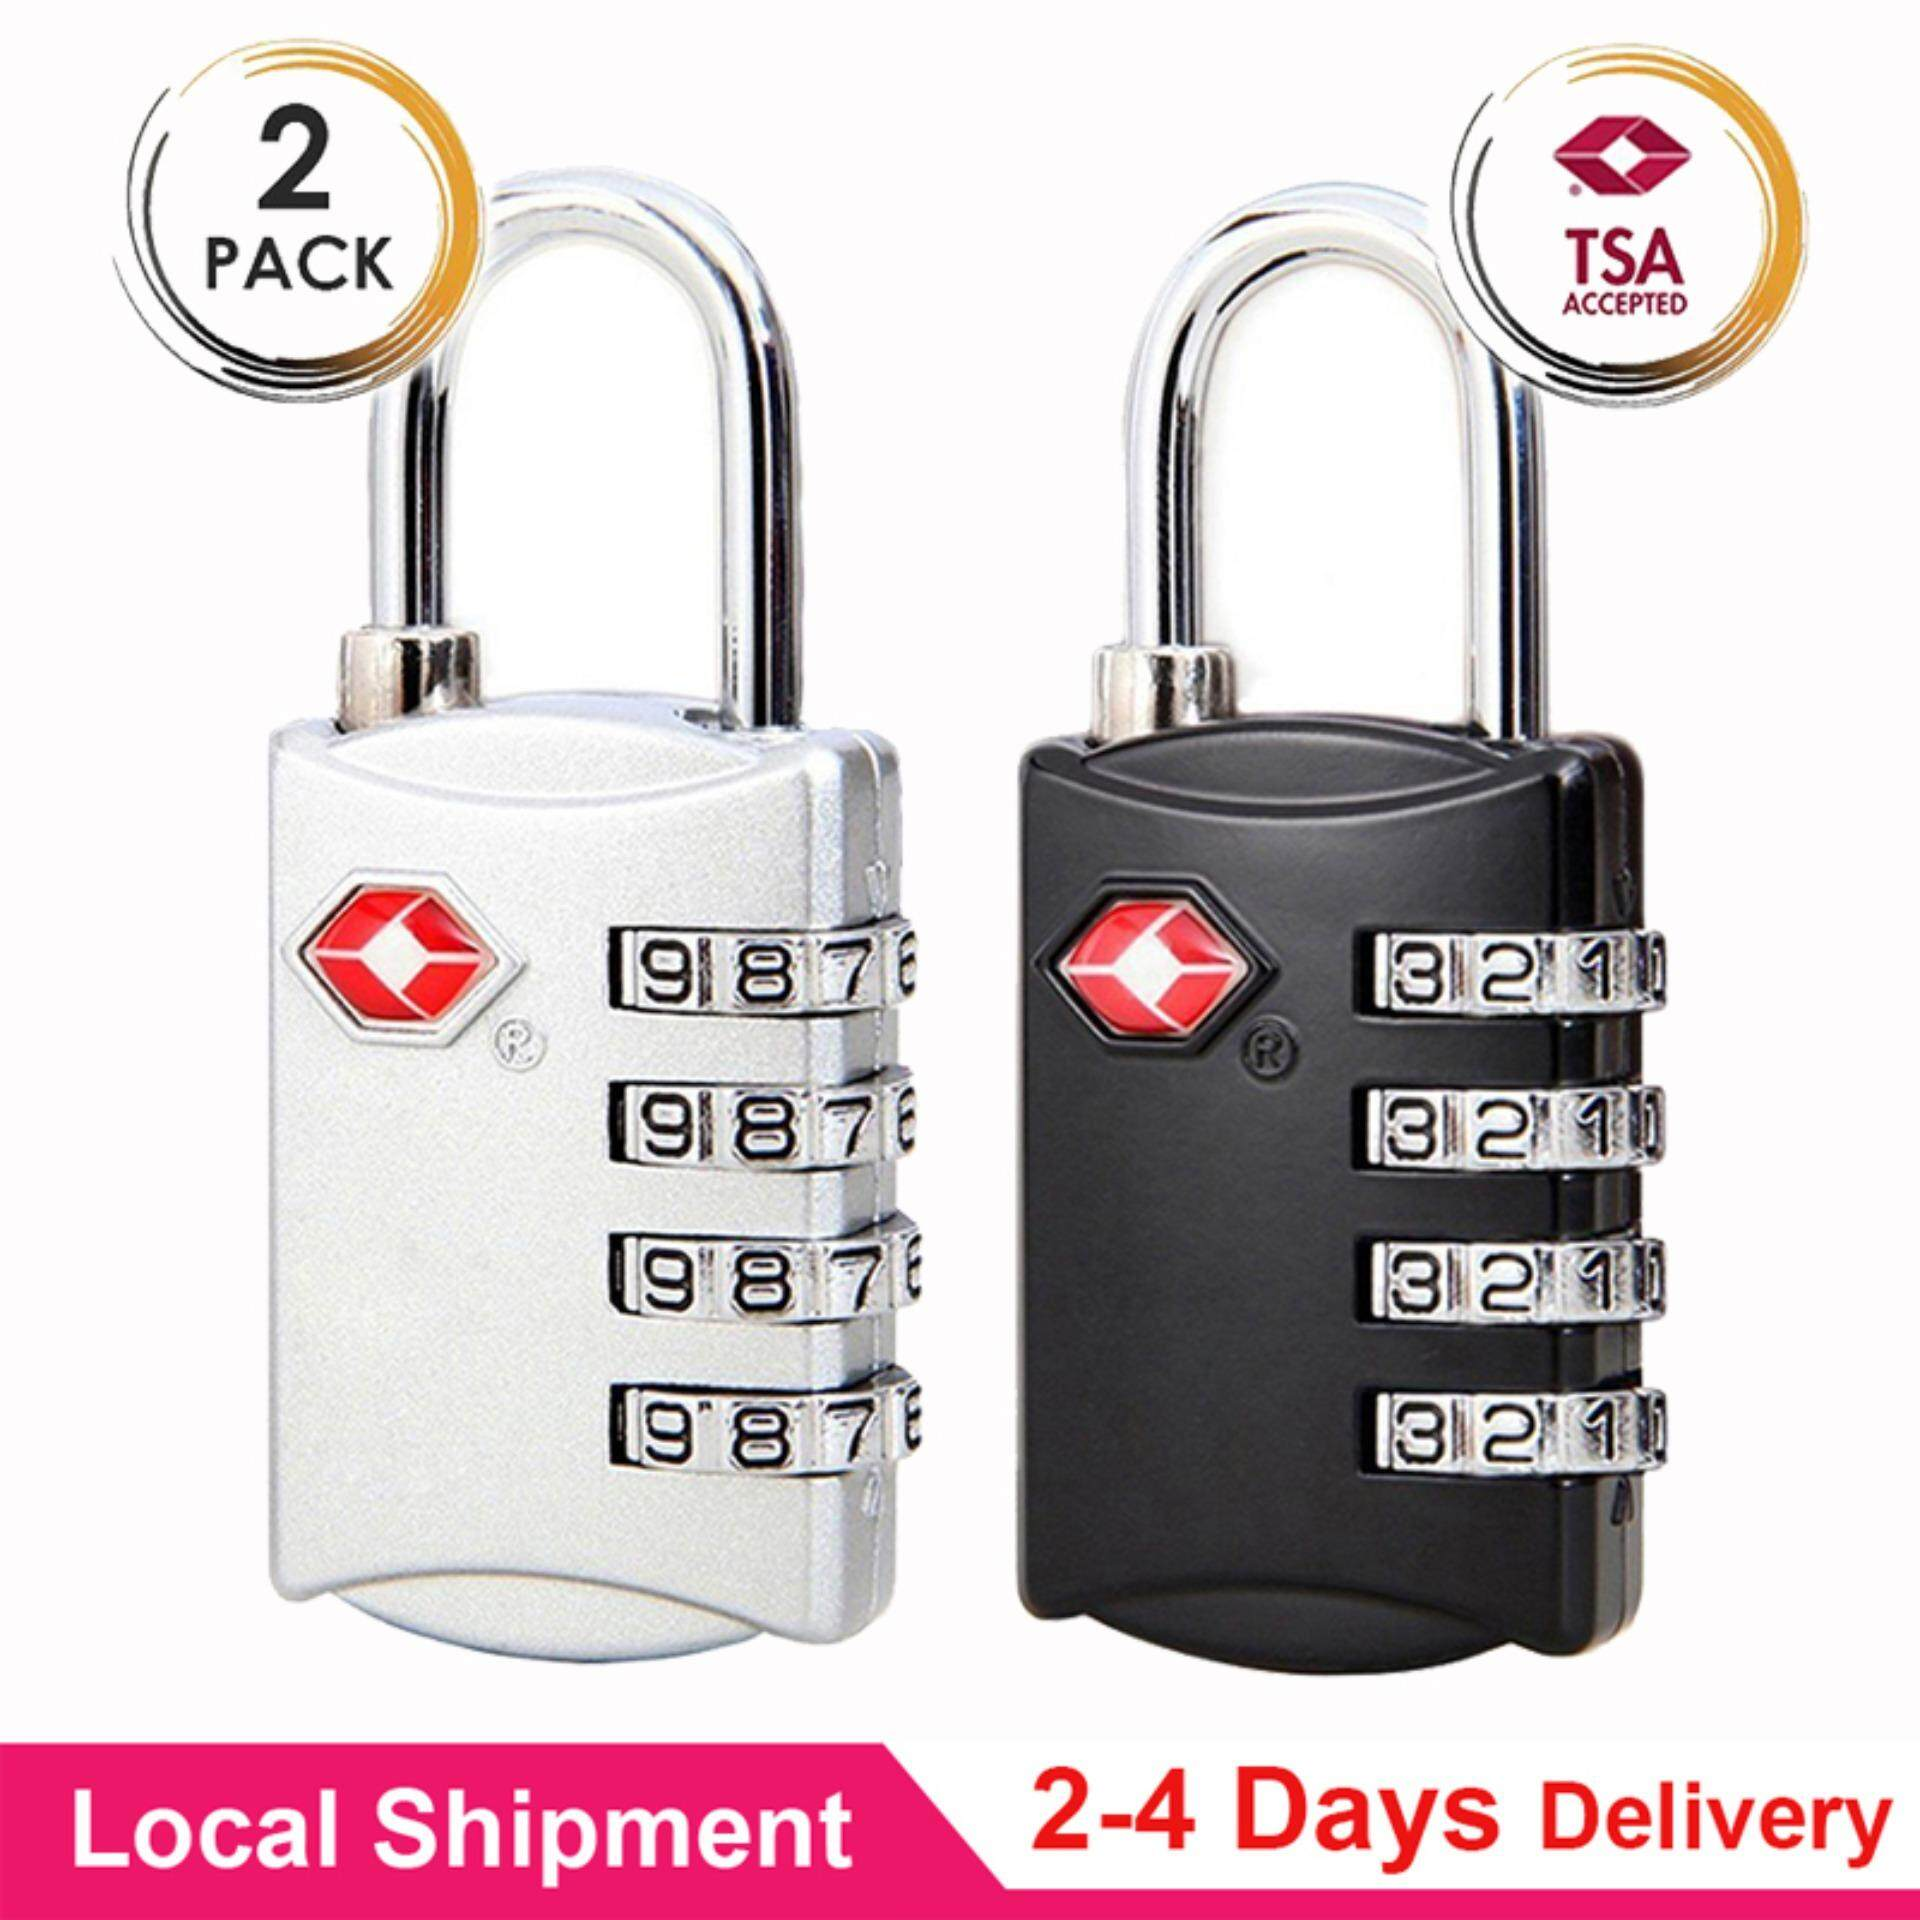 2 PCS Q-shop TSA Approved Luggage Travel Lock, 4 Rows Digital TSA  Combination Travel Luggage Zinc Alloy Lock Password Padlock for School Gym